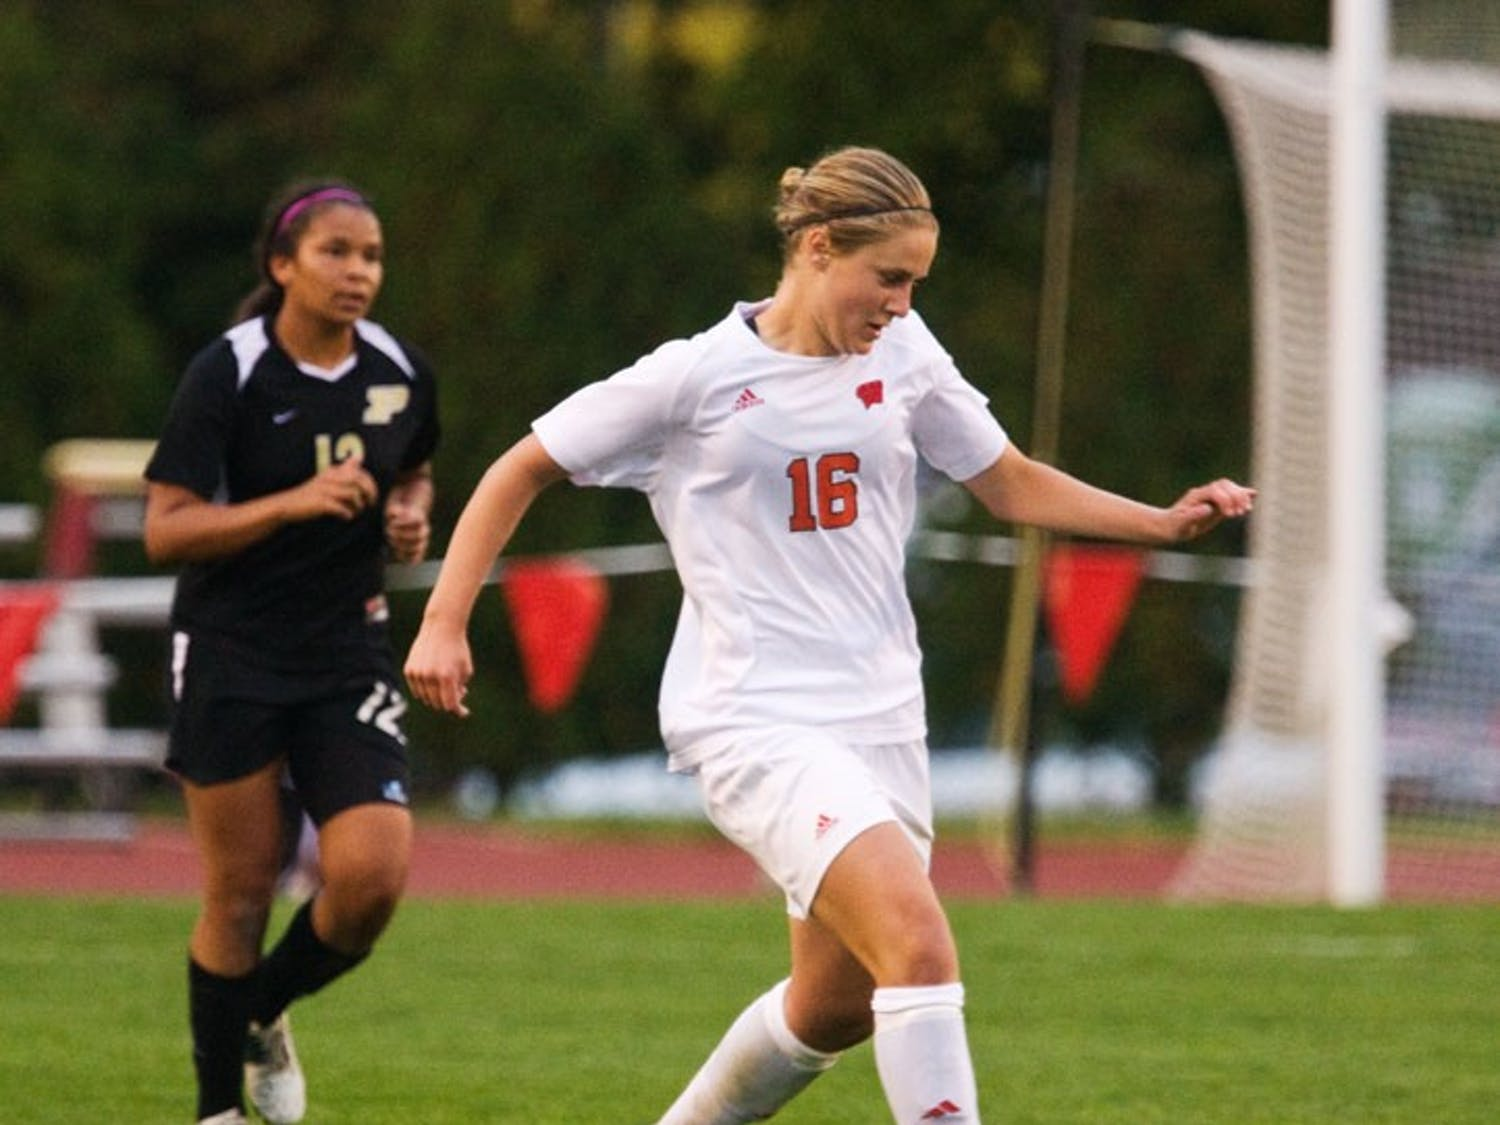 Badgers off to fantastic Big Ten start after victory over Illinois